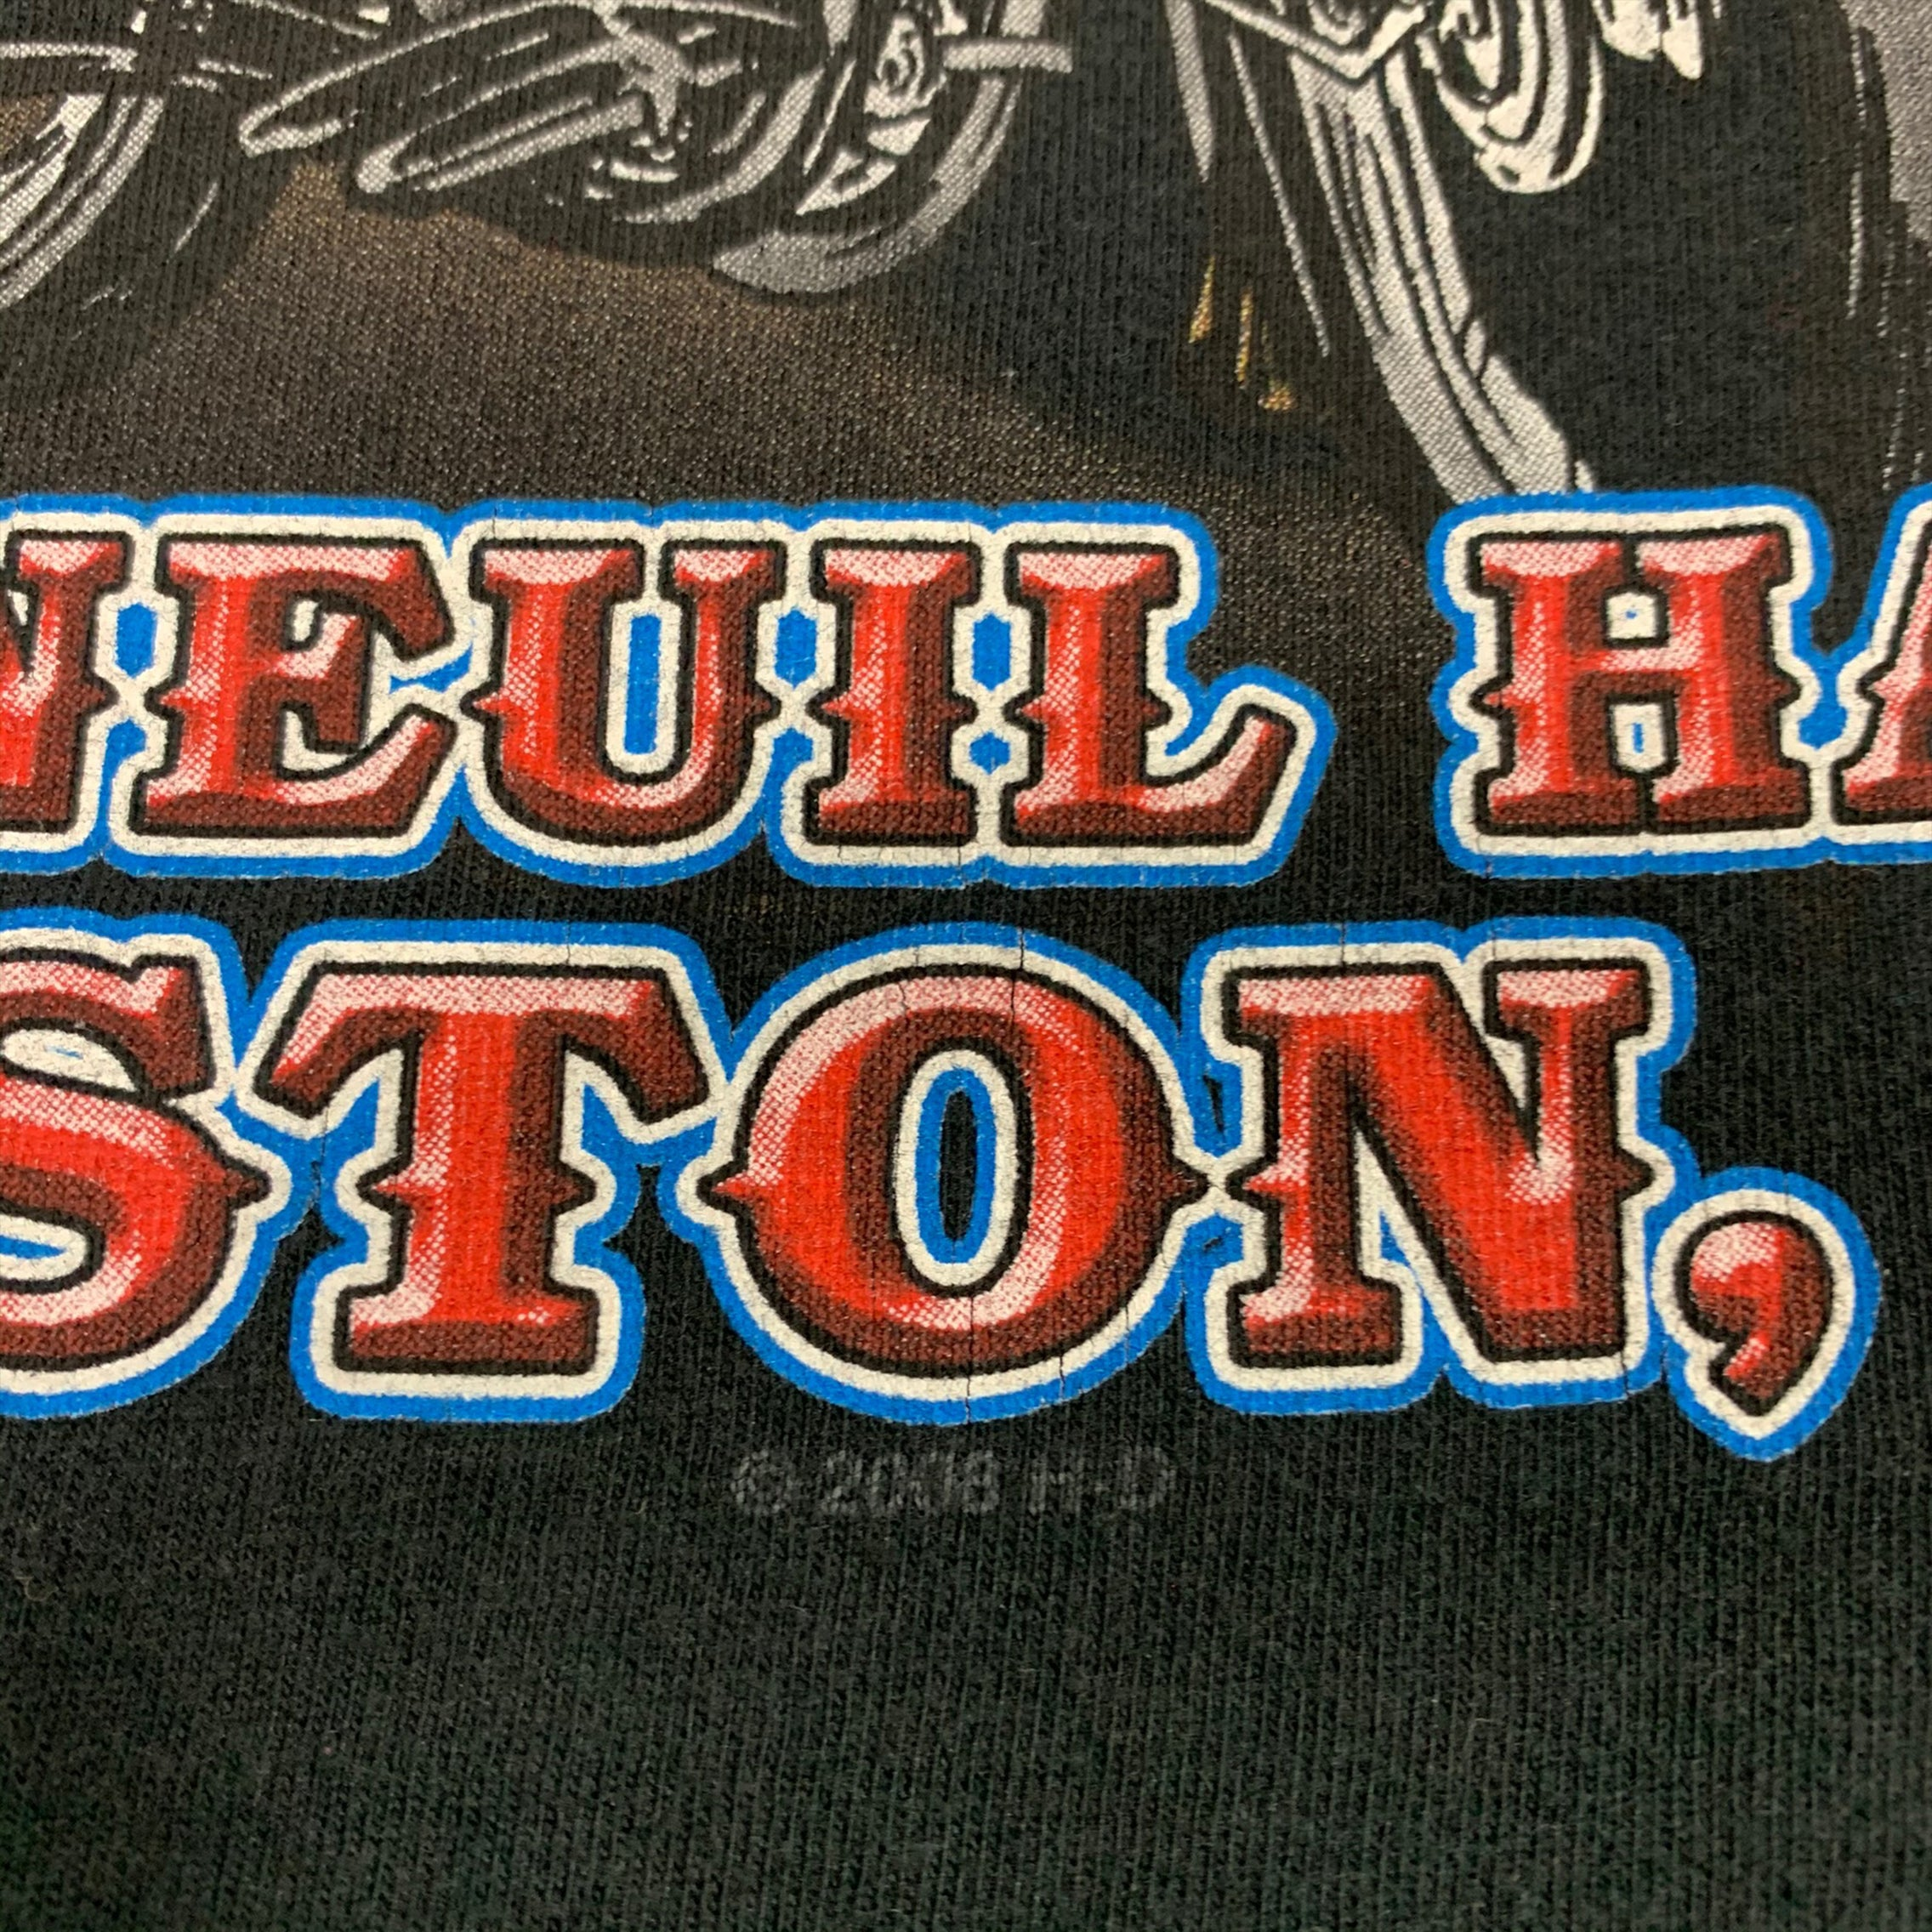 2009 Boston Harley Davidson Group Therapy T-Shirt